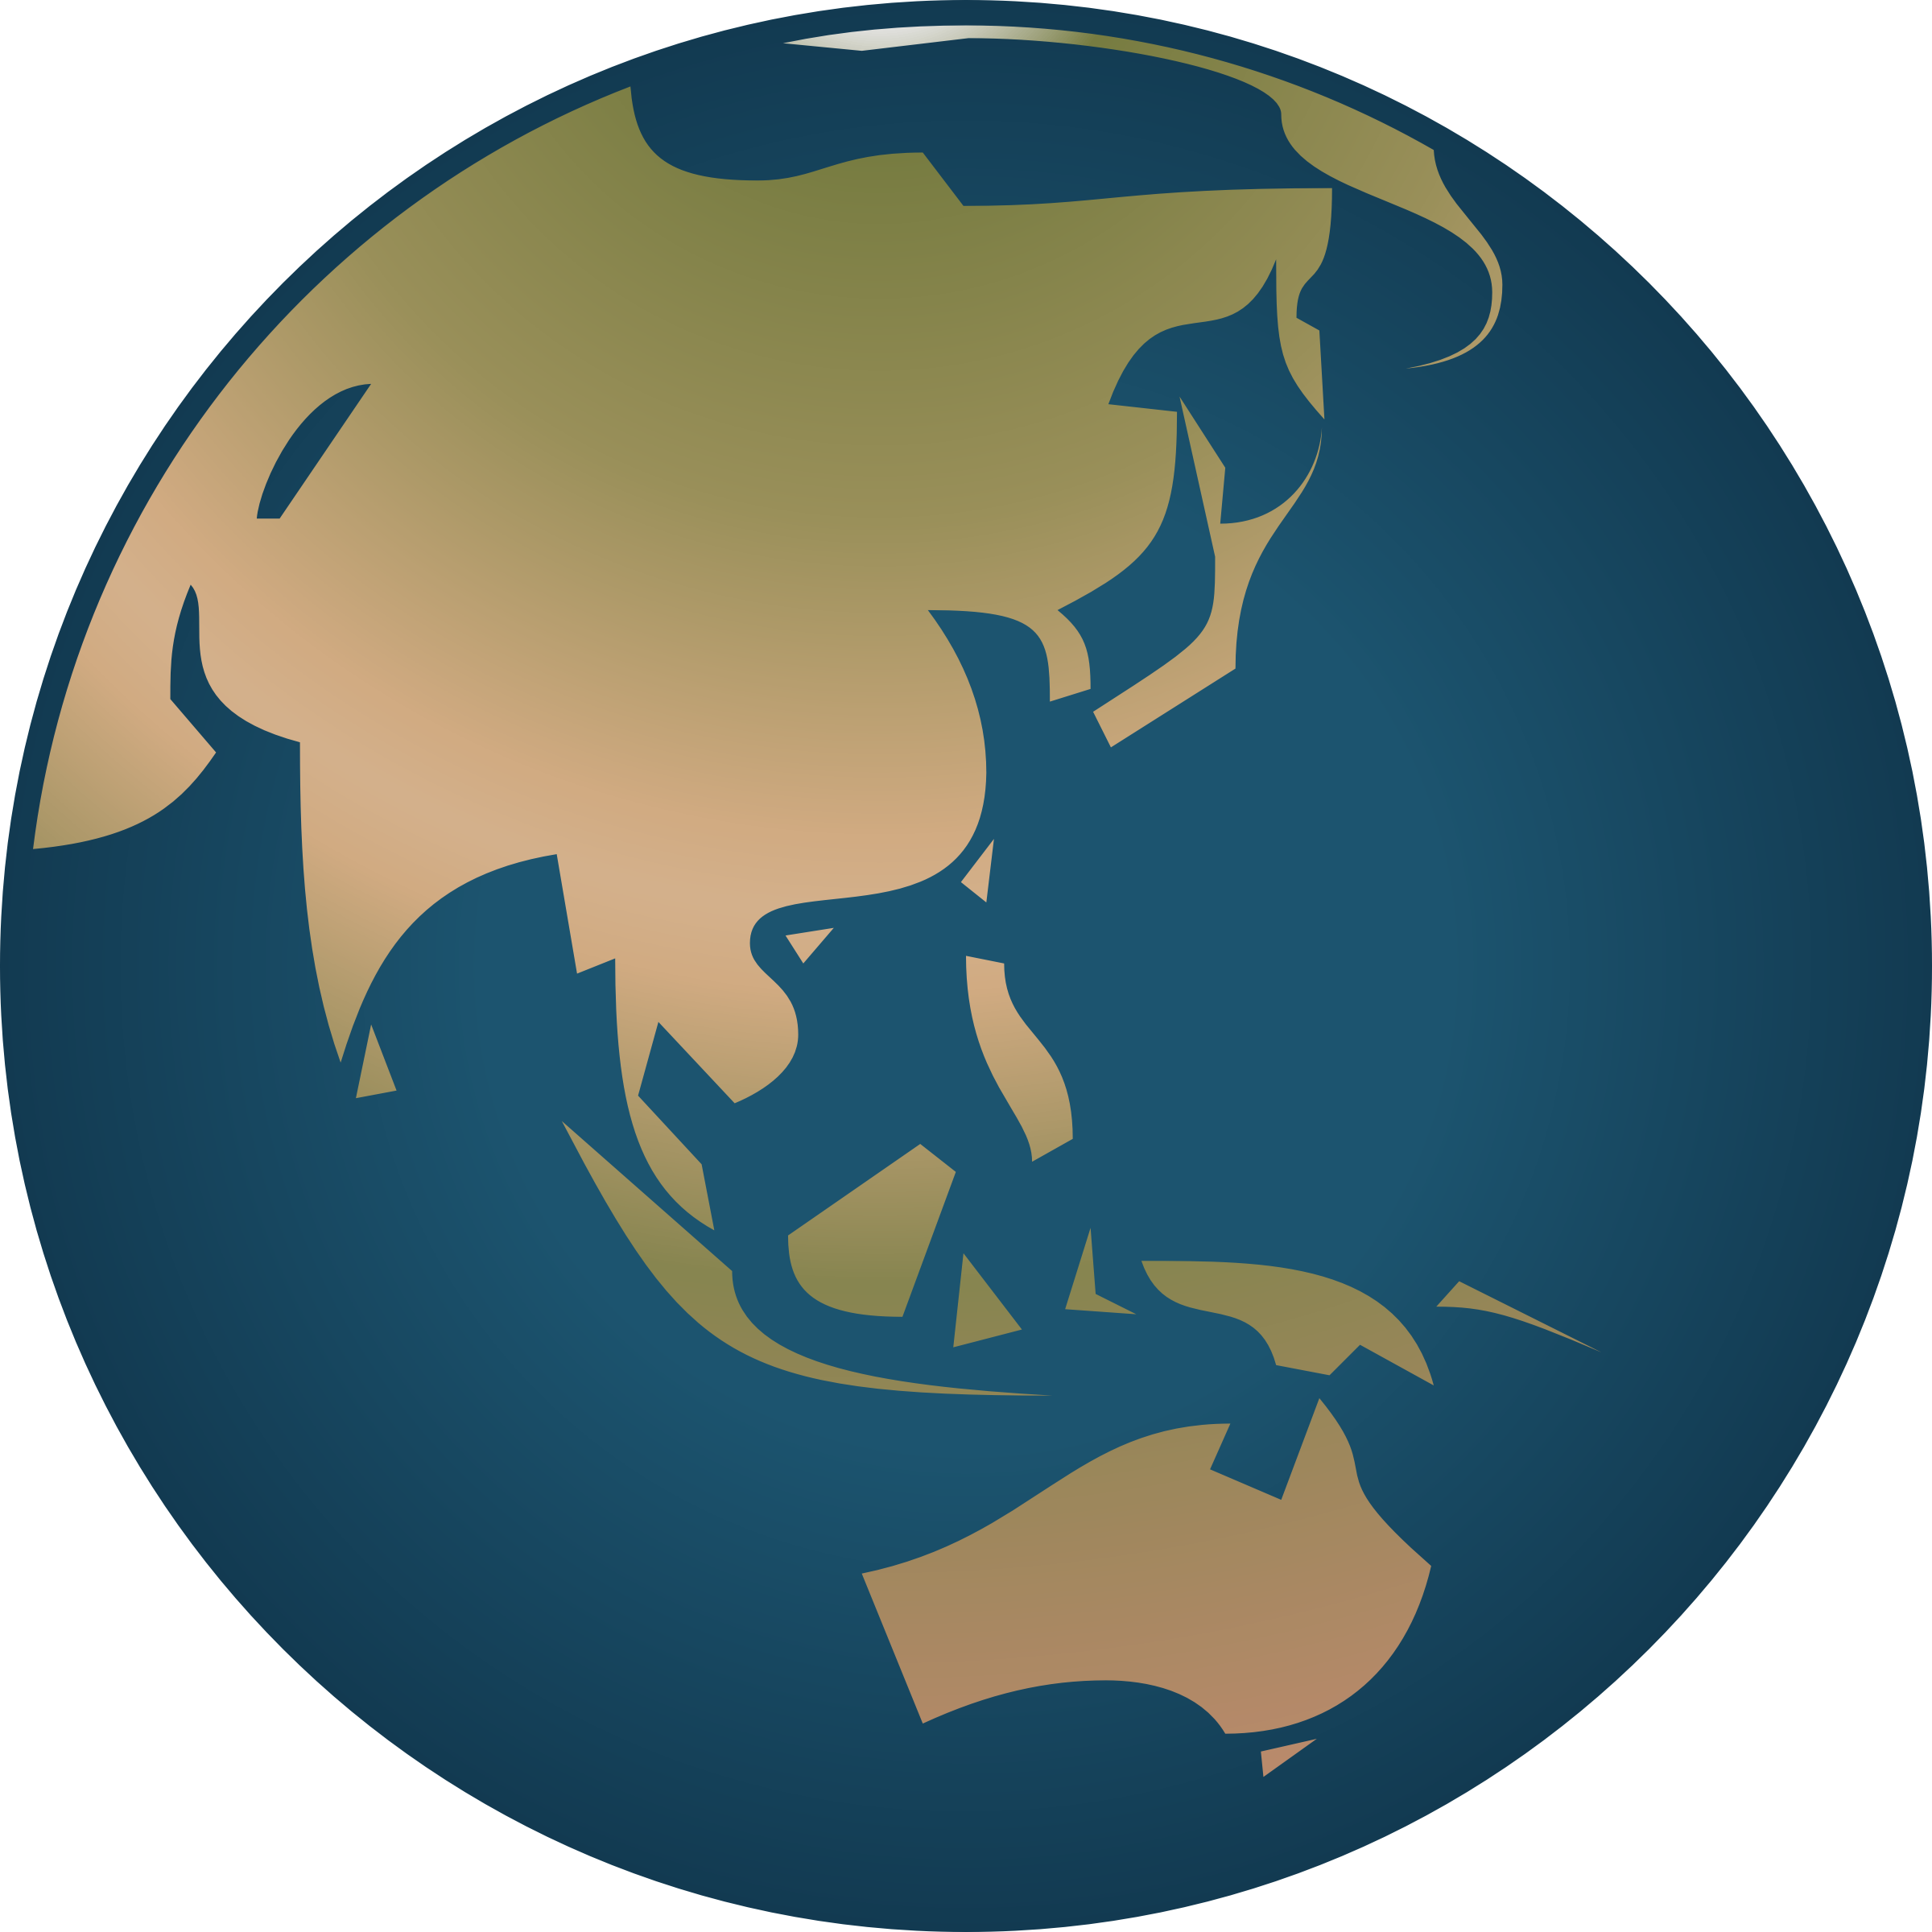 Simple Globe Facing Asia And Australia By Sev